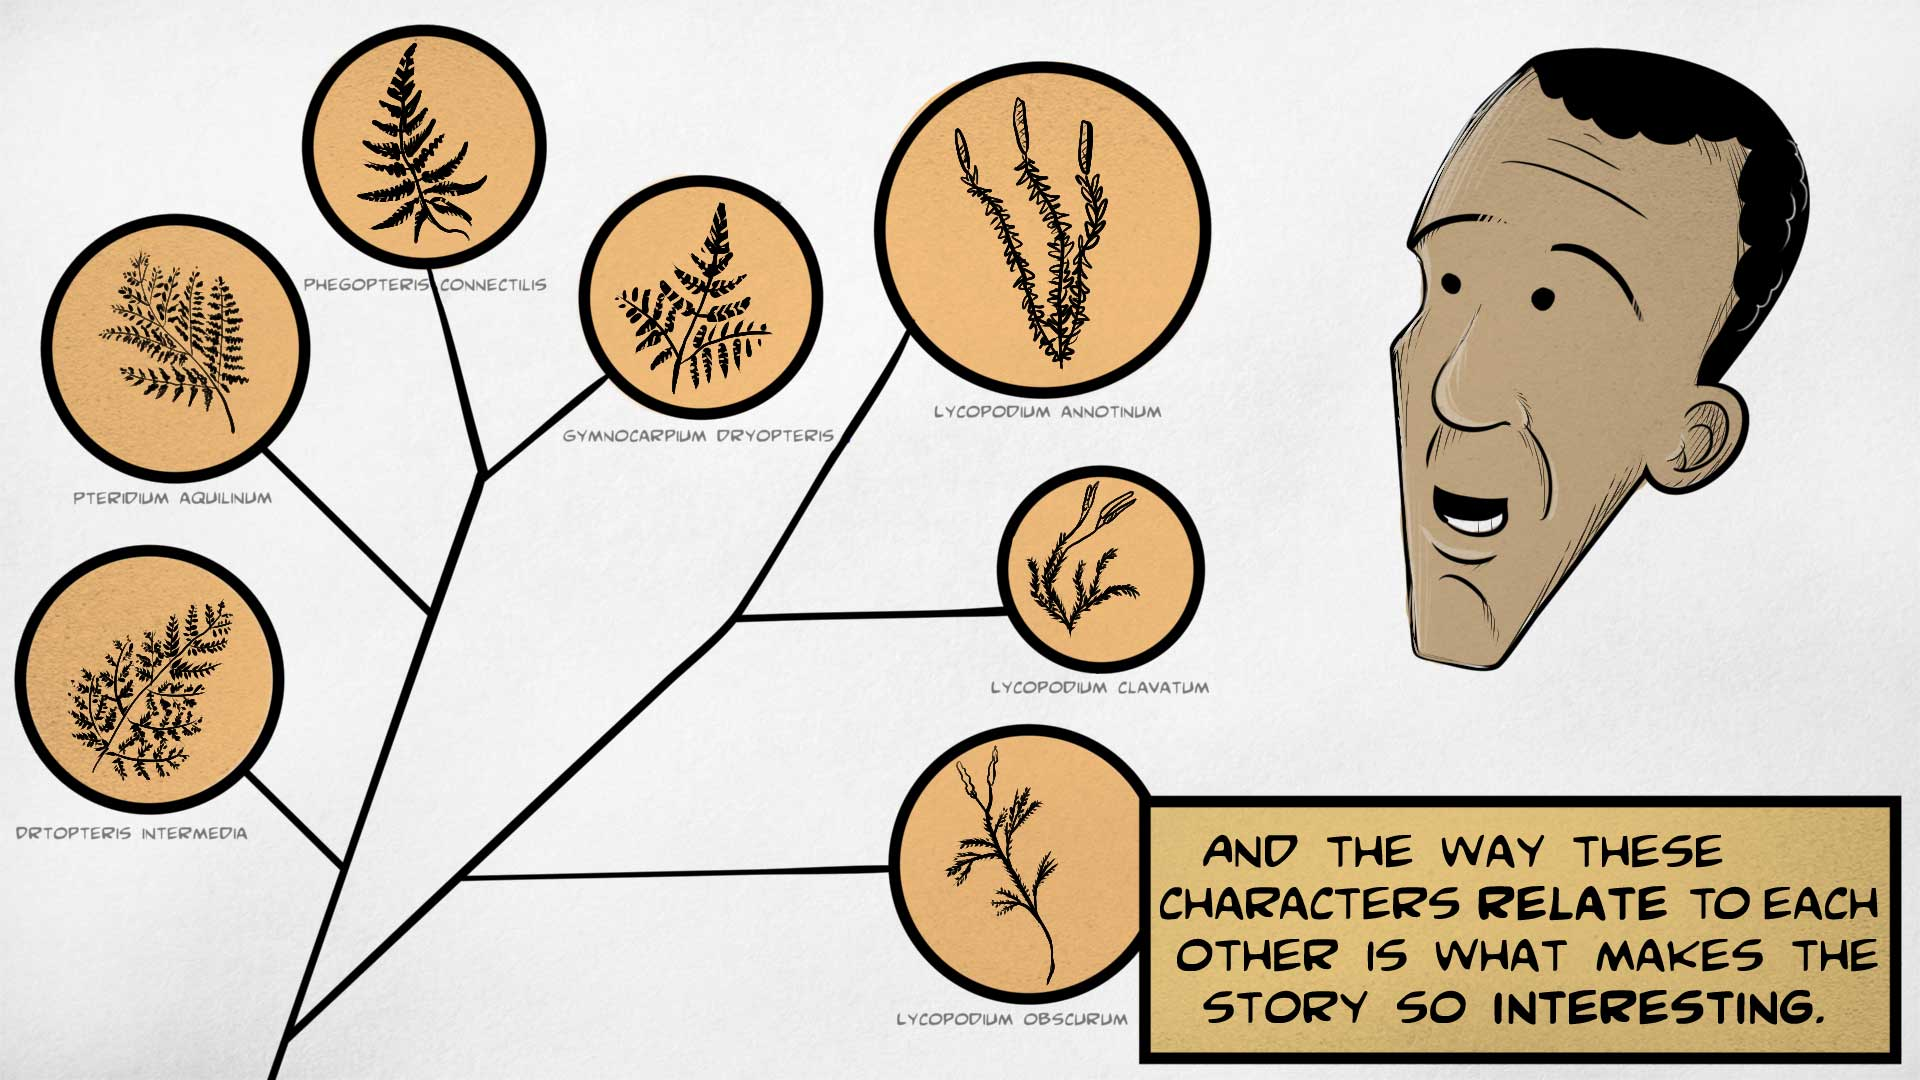 "Leo, the narrator, says, ""And the wy these characters relate to each other is what makes the story so interesting."" He is looking at a family tree of different plant species, including Lycopodium obscurum, Lycopodium clavatum, Lycopodium annotinum, and others."